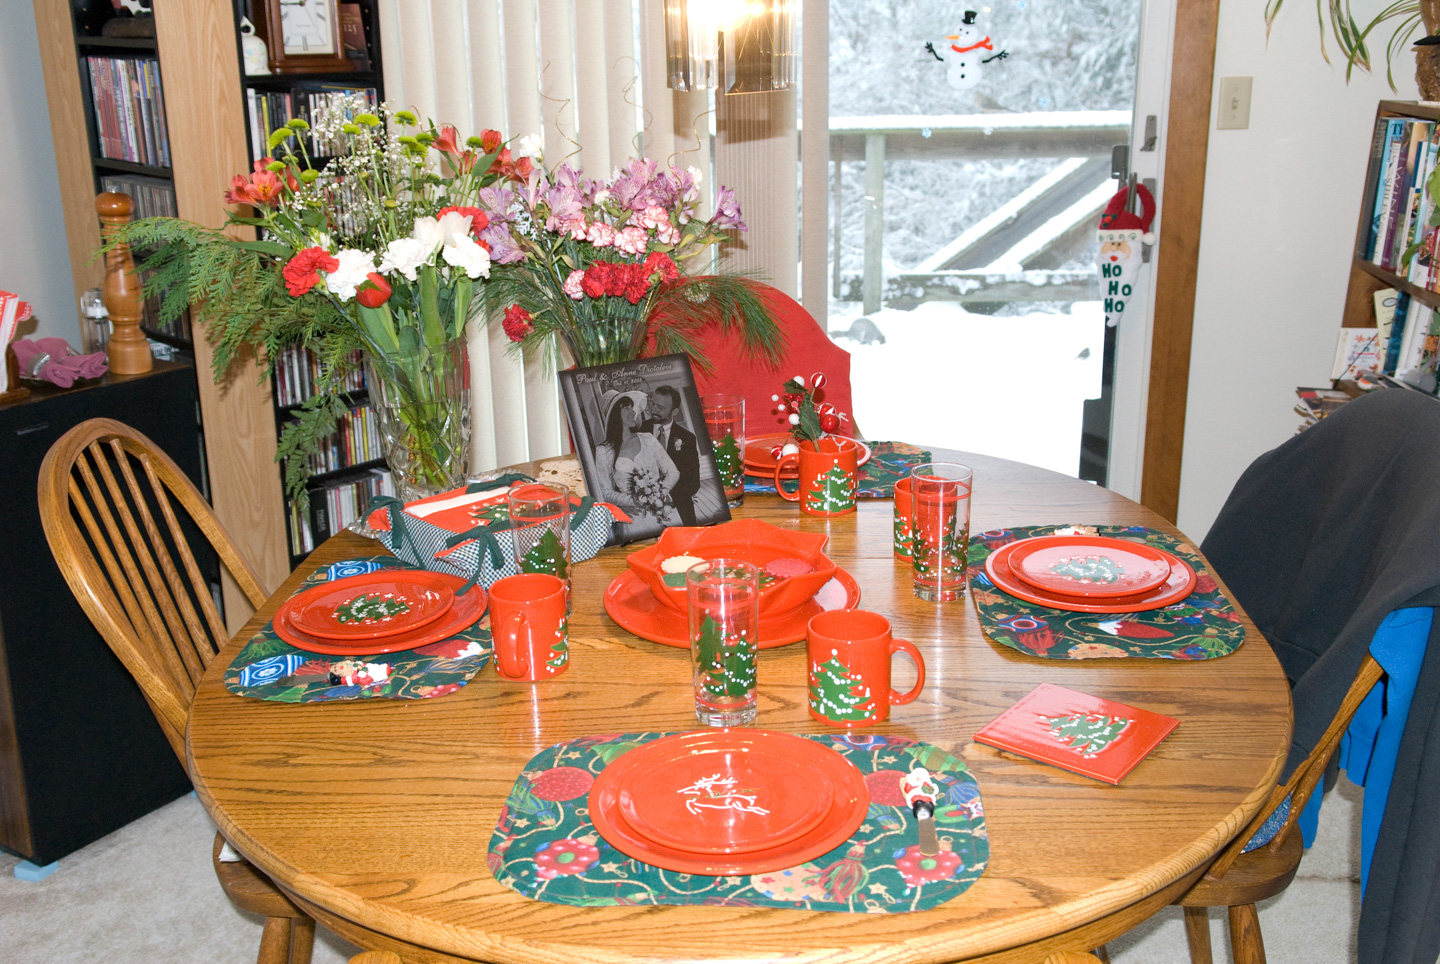 Table with Christmas place settings